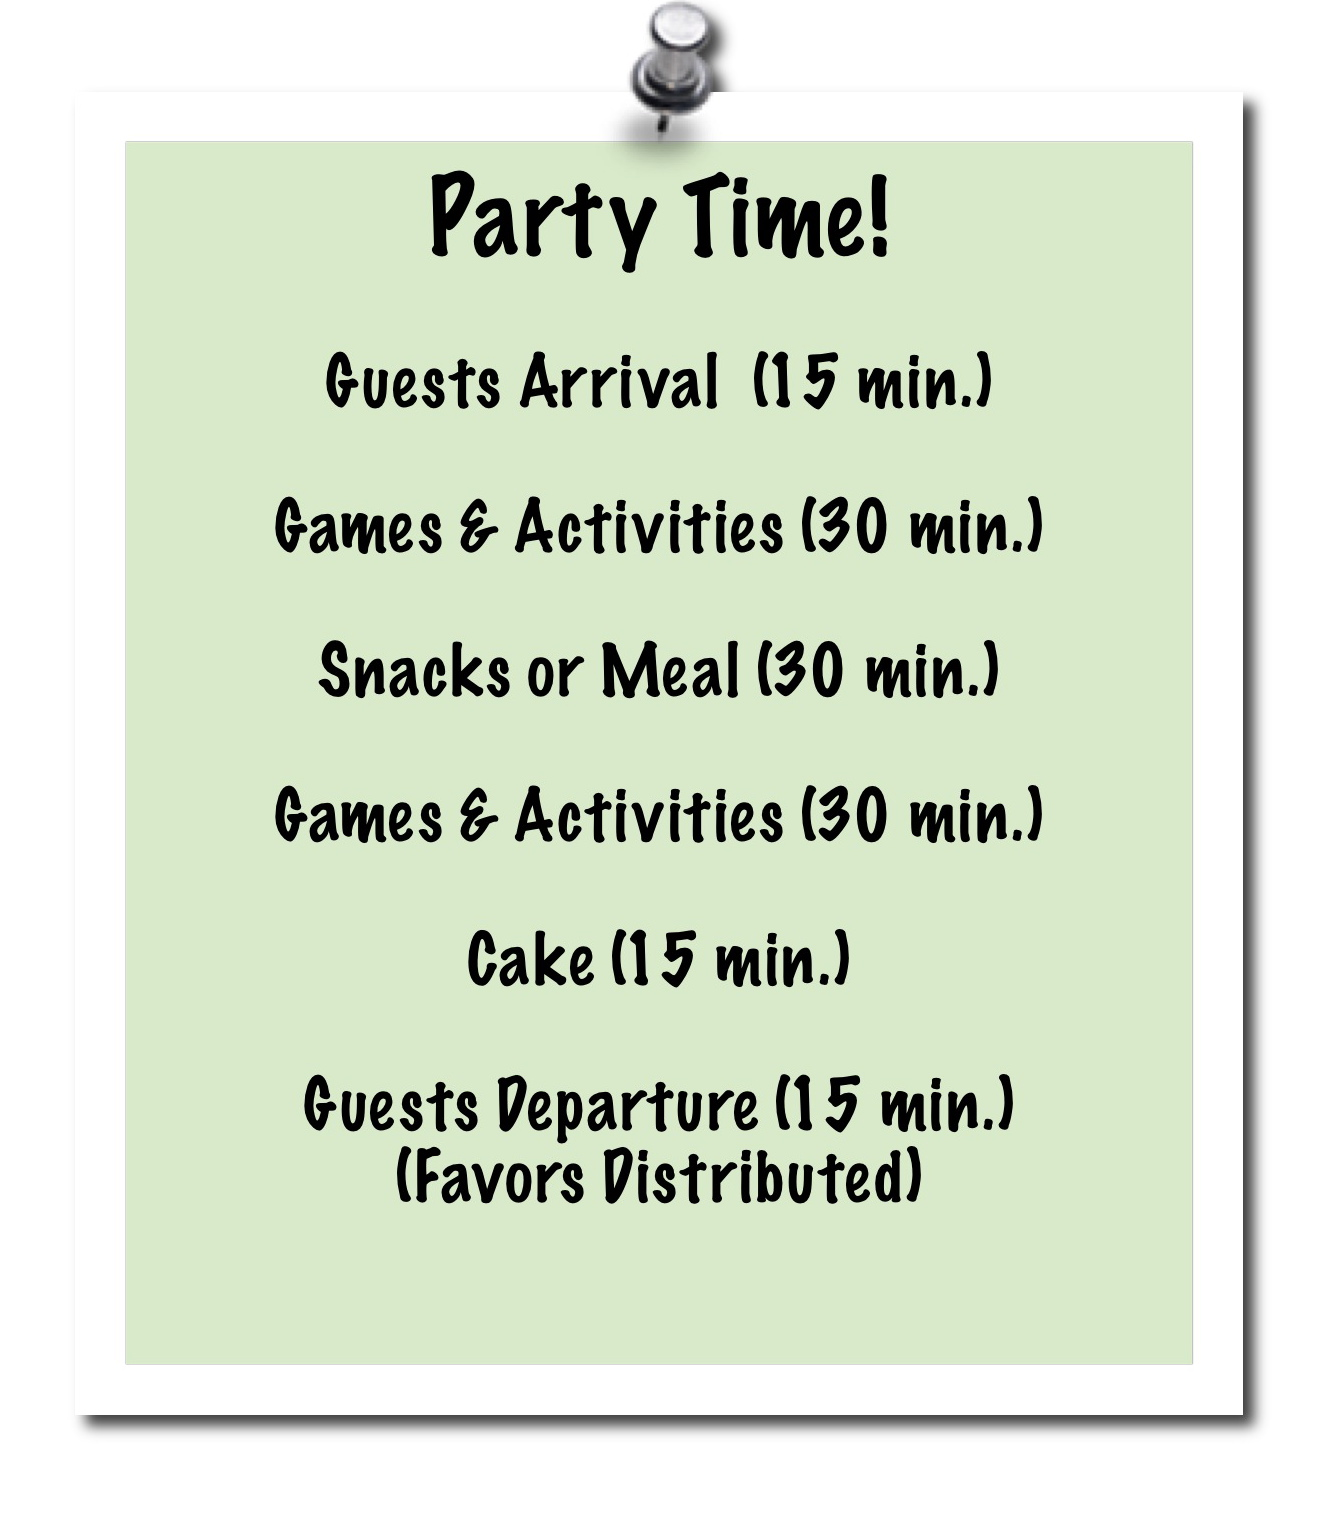 Birthday Itinerary Template Loan Agreement Doc Contact Form Invitation For  Surprise Party Wording Gallery  Birthday Itinerary Template